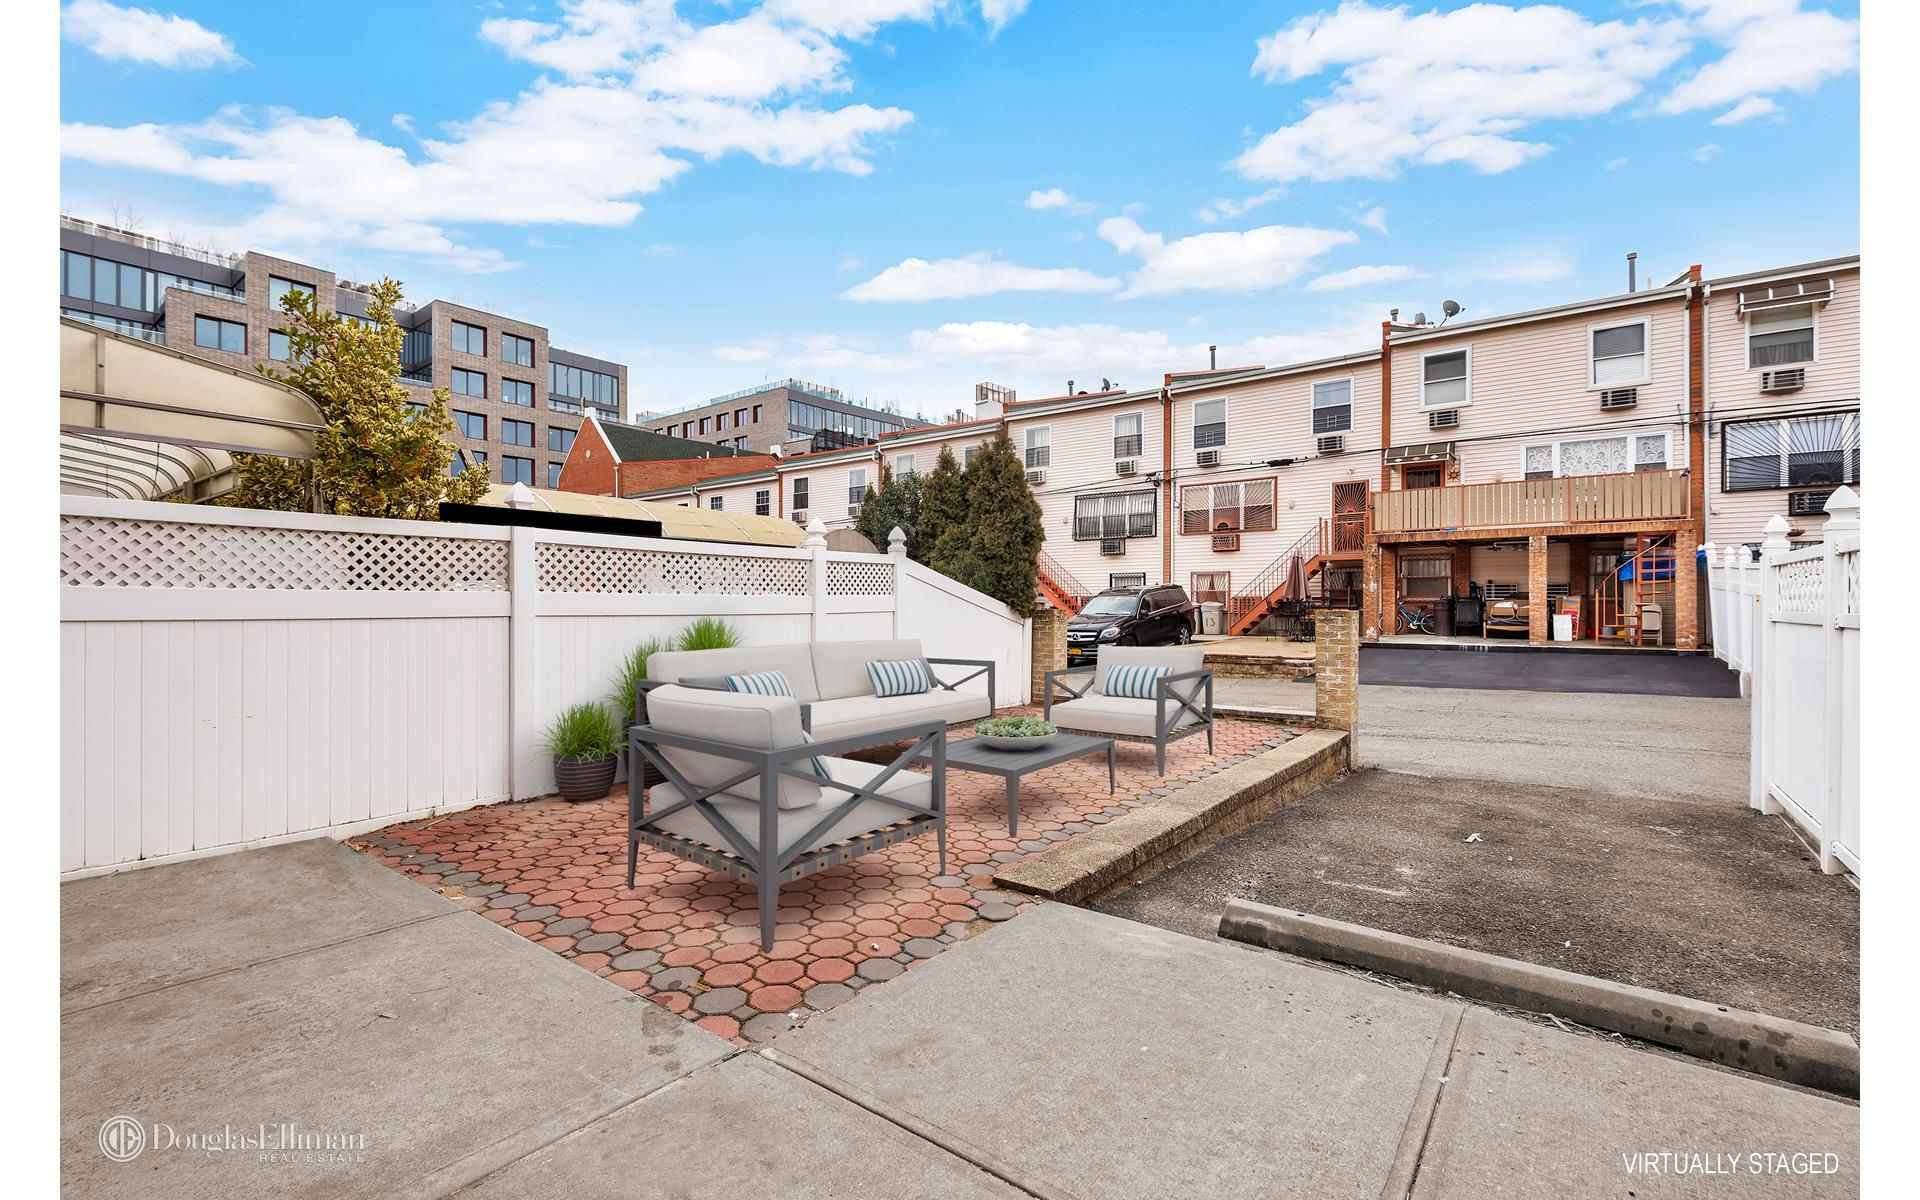 26 Noll St Photo 1 - ELLIMAN-3616122